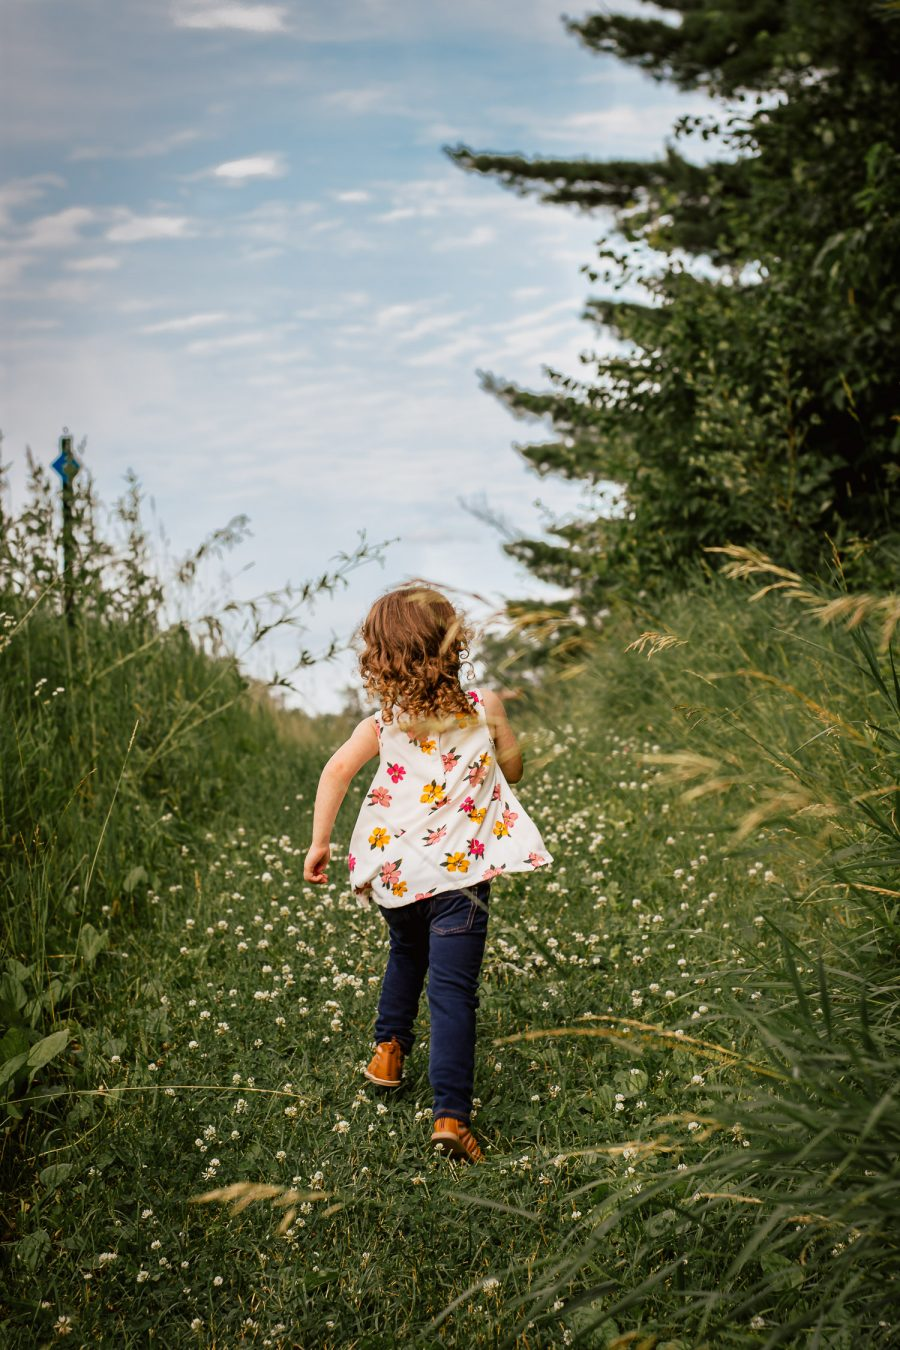 child photography in appleton, wi by daphodil photo & film